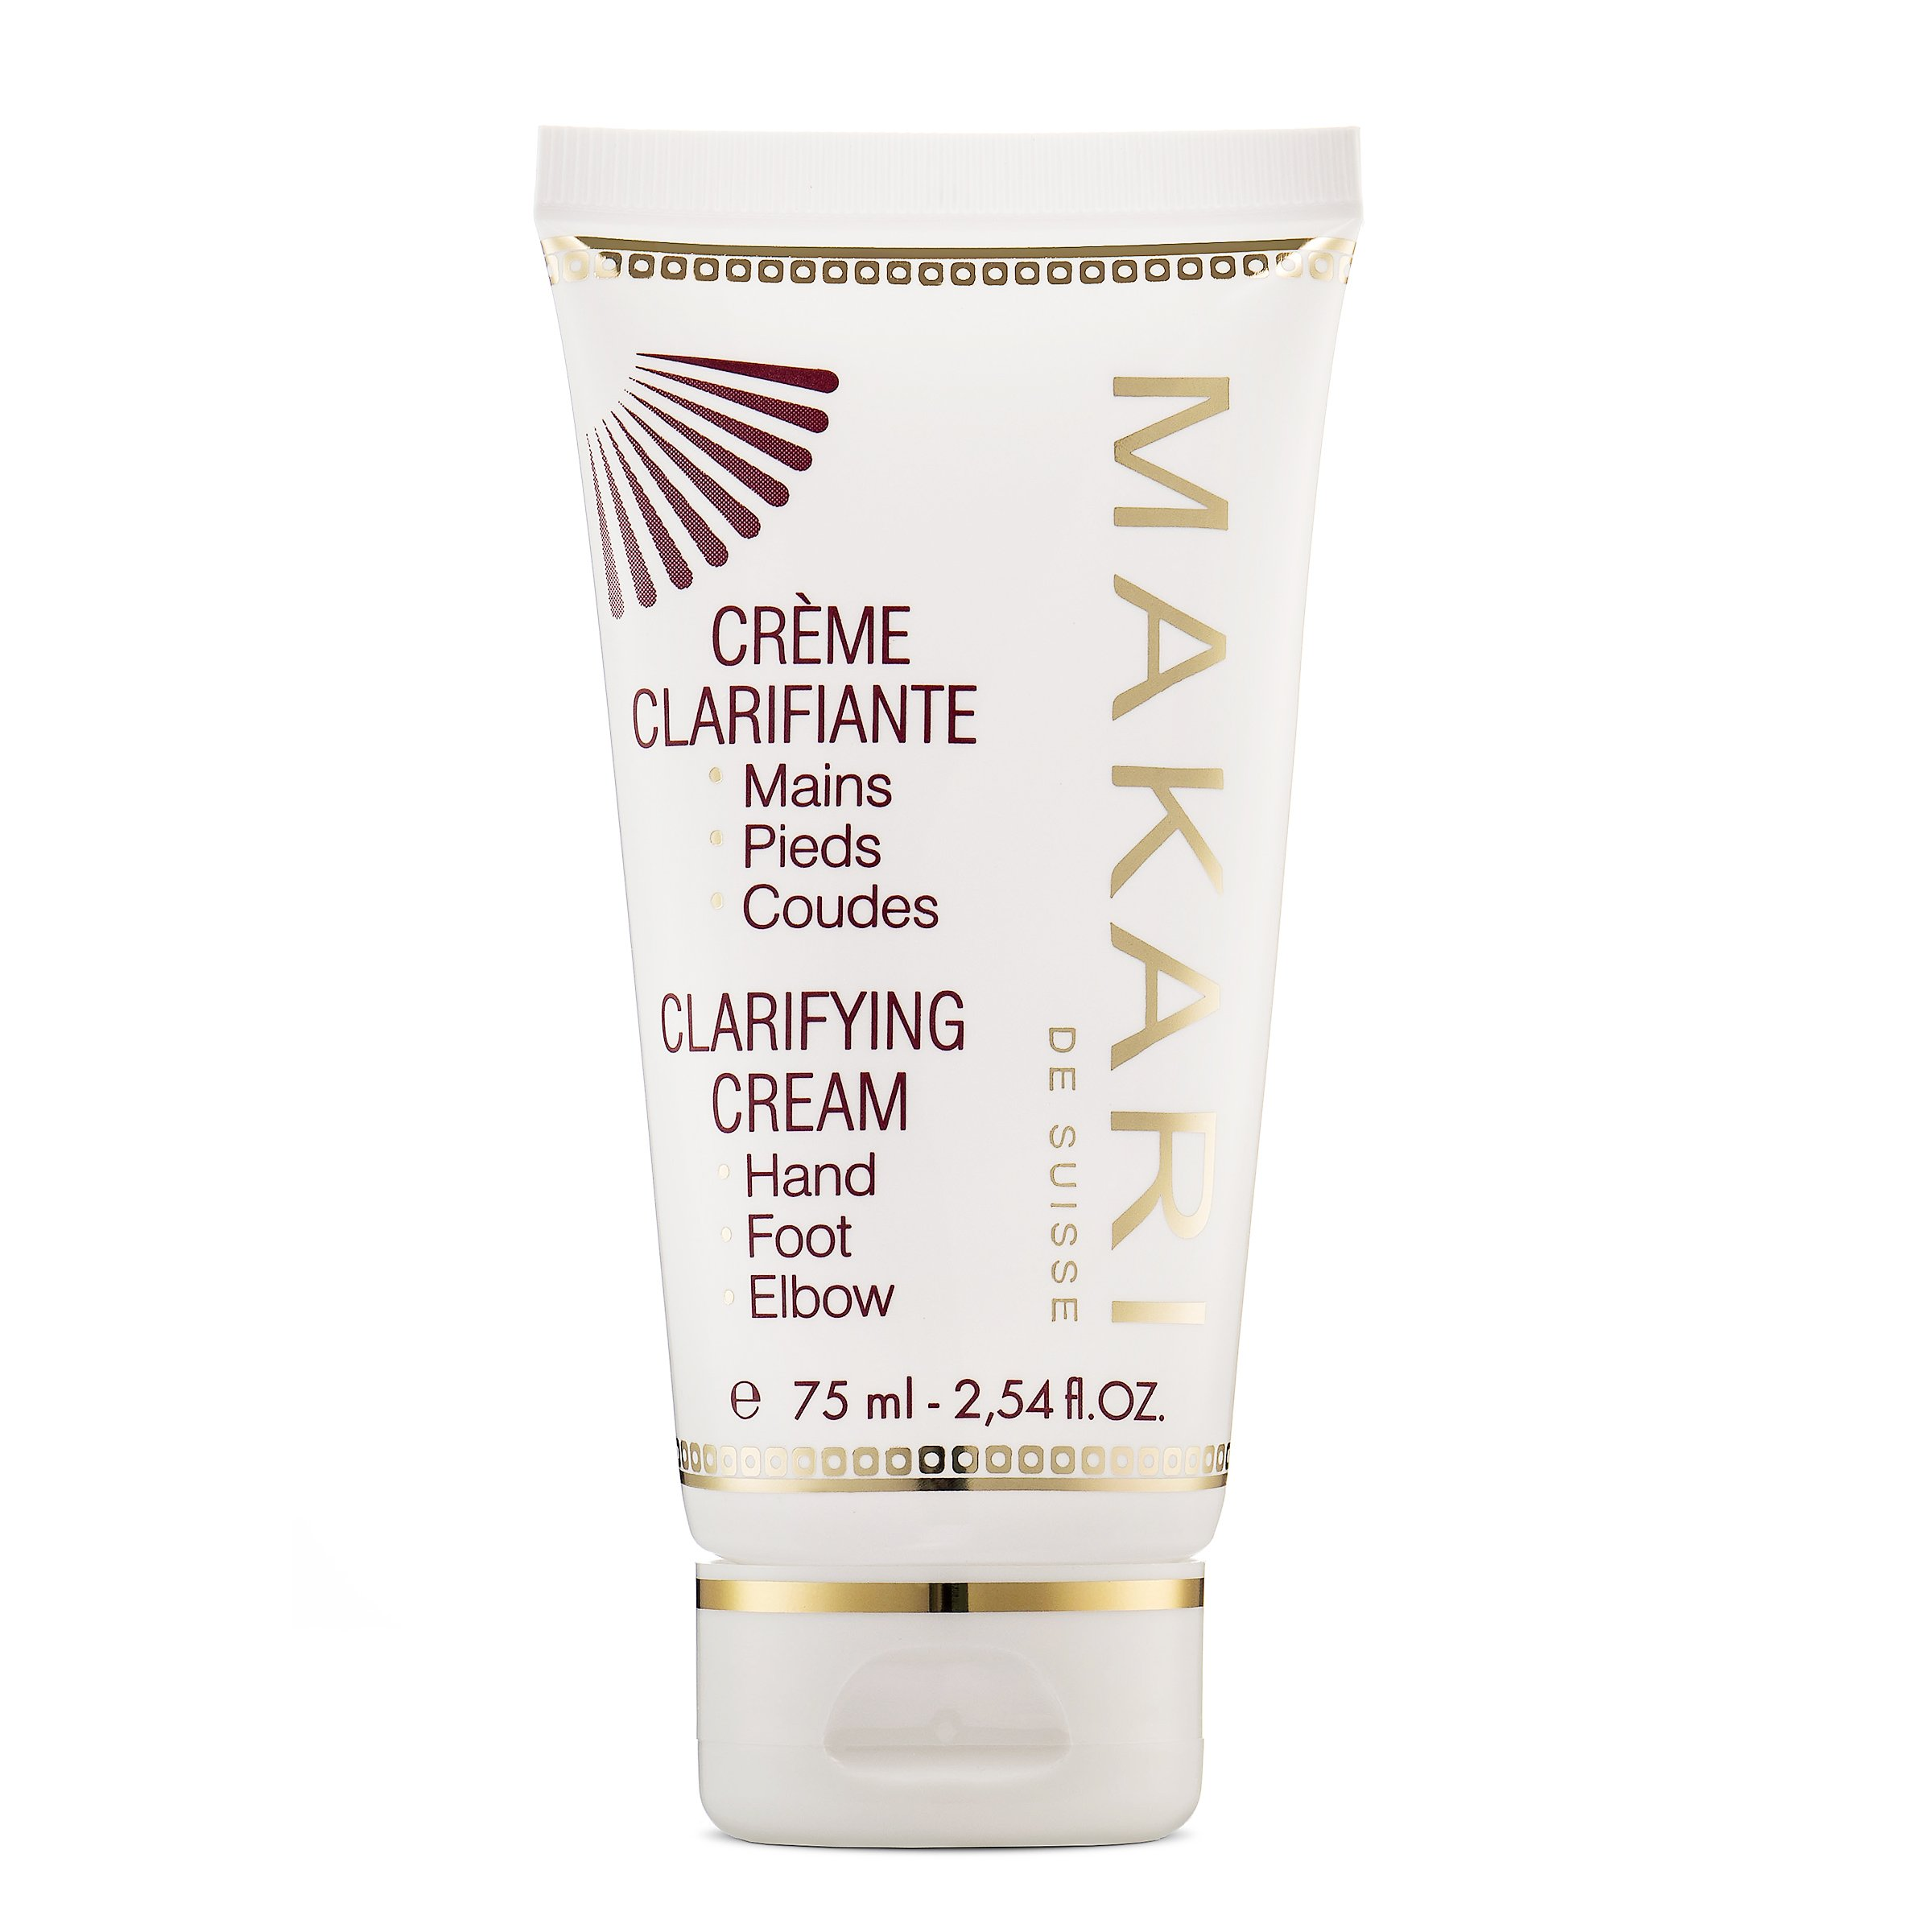 Makari Classic Skin Clarifying Cream 2.54 fl.oz – Whitening, Toning & Moisturizing Body Balm – Targeted Lightening for Dryness & Discoloration on Hands, Feet, Elbows & Knees